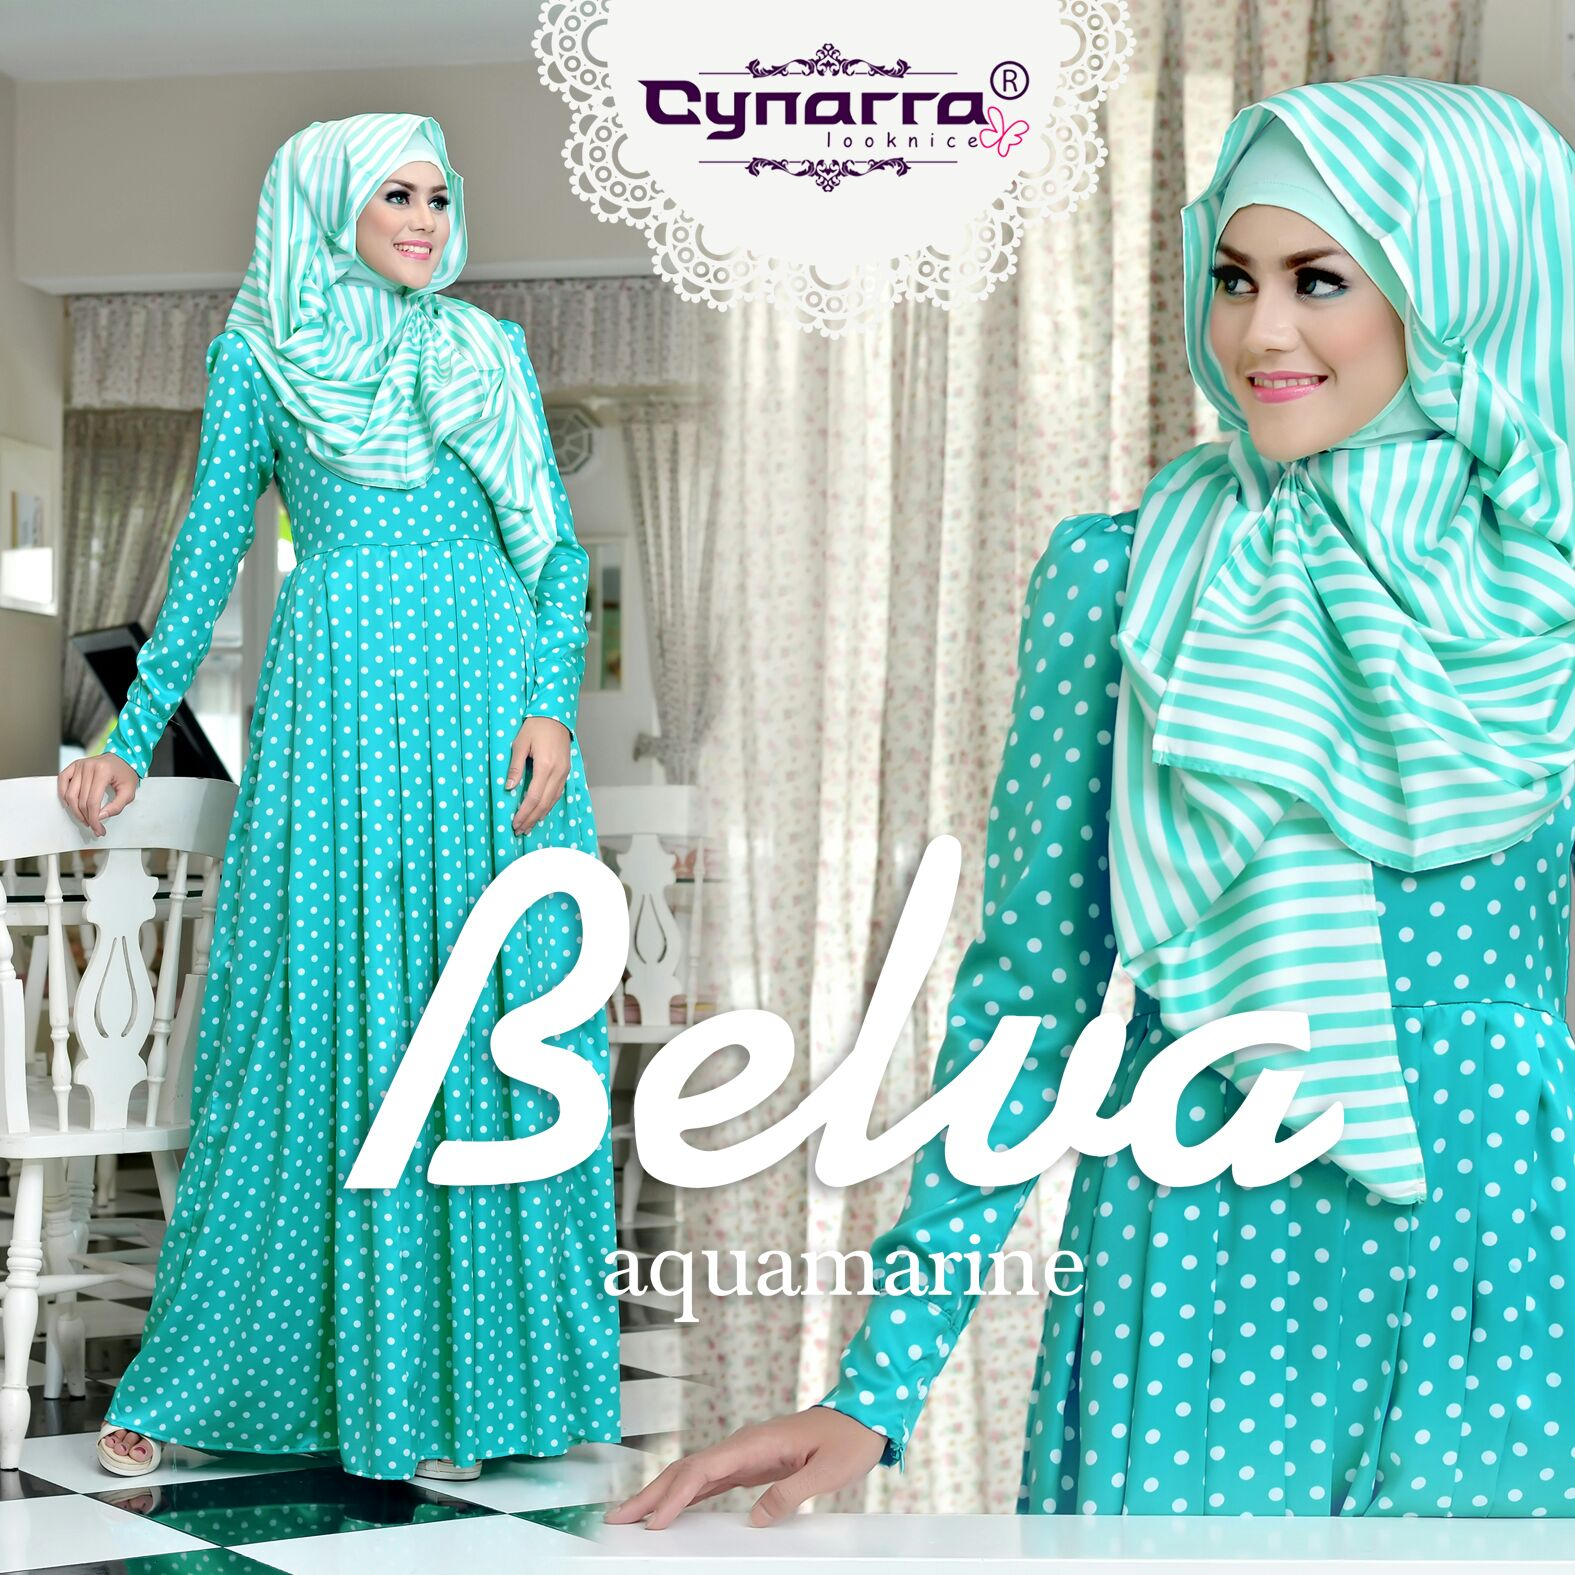 Amazing Hijab Alila Instagram By Vidia O'shop: Belva By Cynarra Looknice